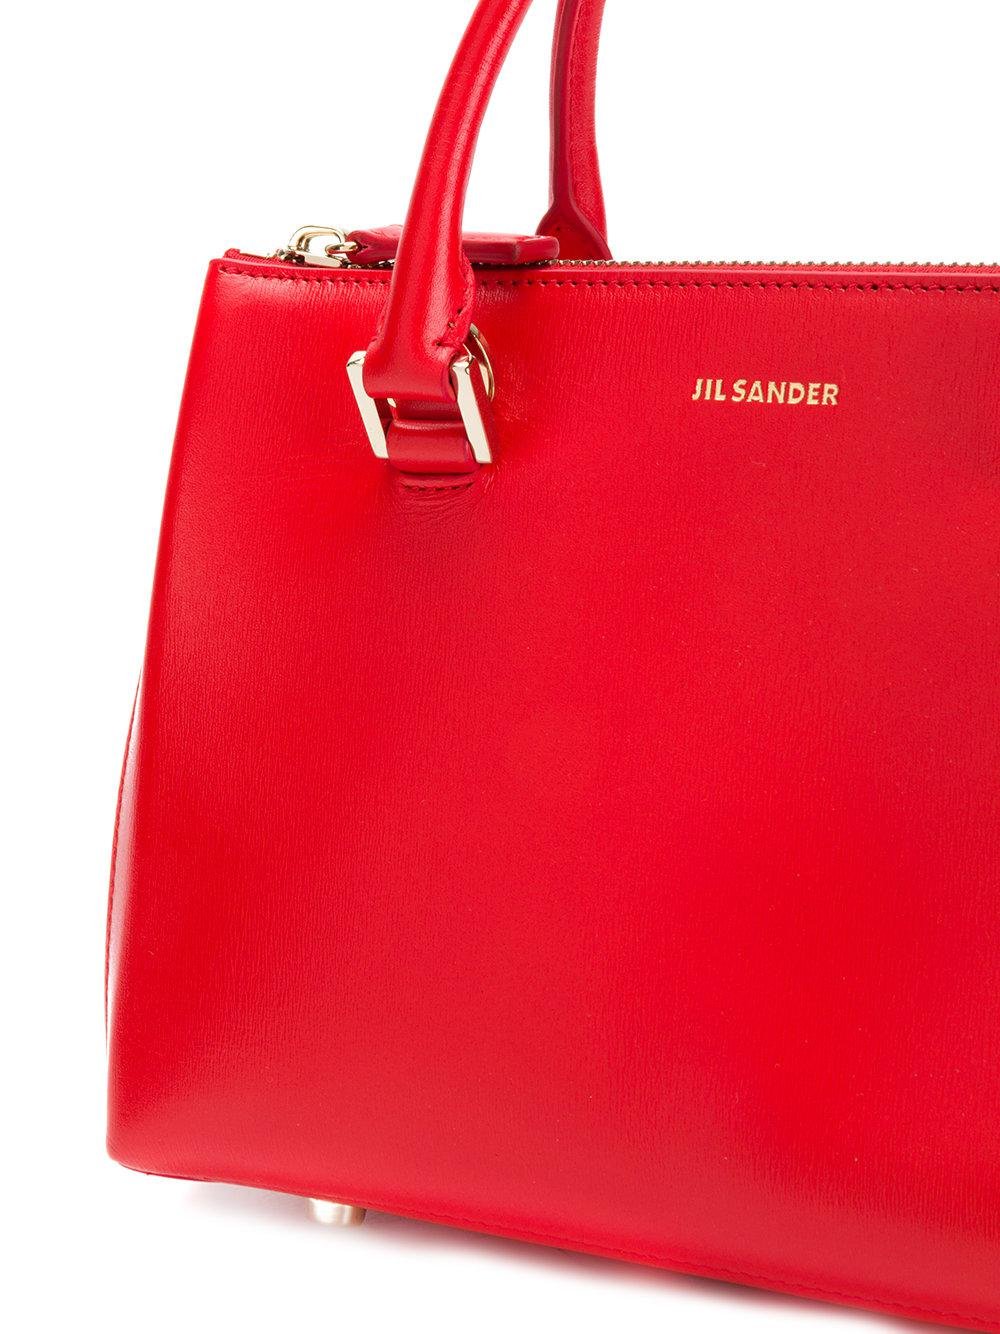 Clearance Authentic Jil Sander small logo tote Quality Original Discount  Newest Outlet Extremely 100% Original 6fbd002c97